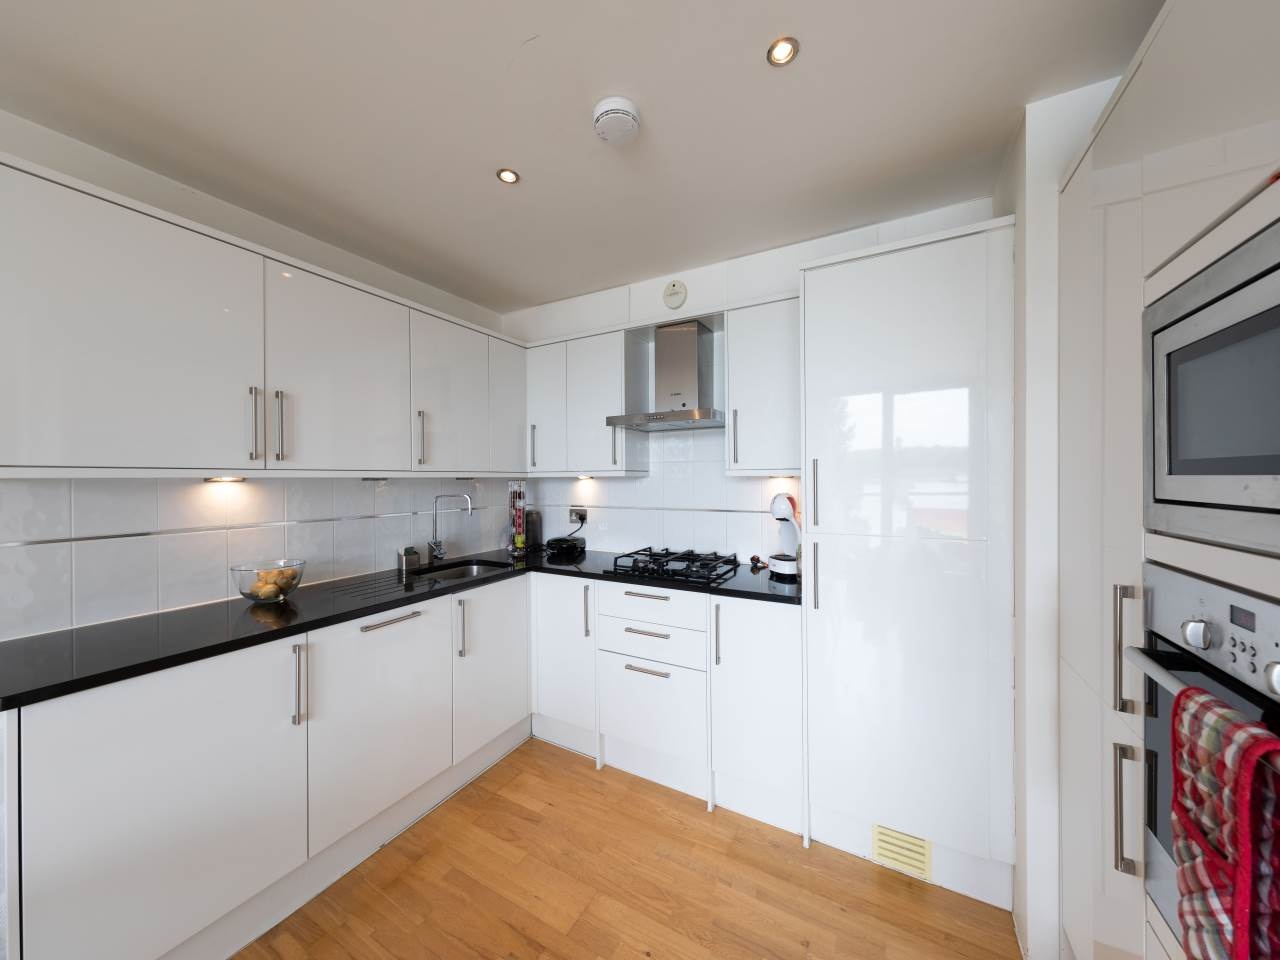 2 bed flat to rent 10